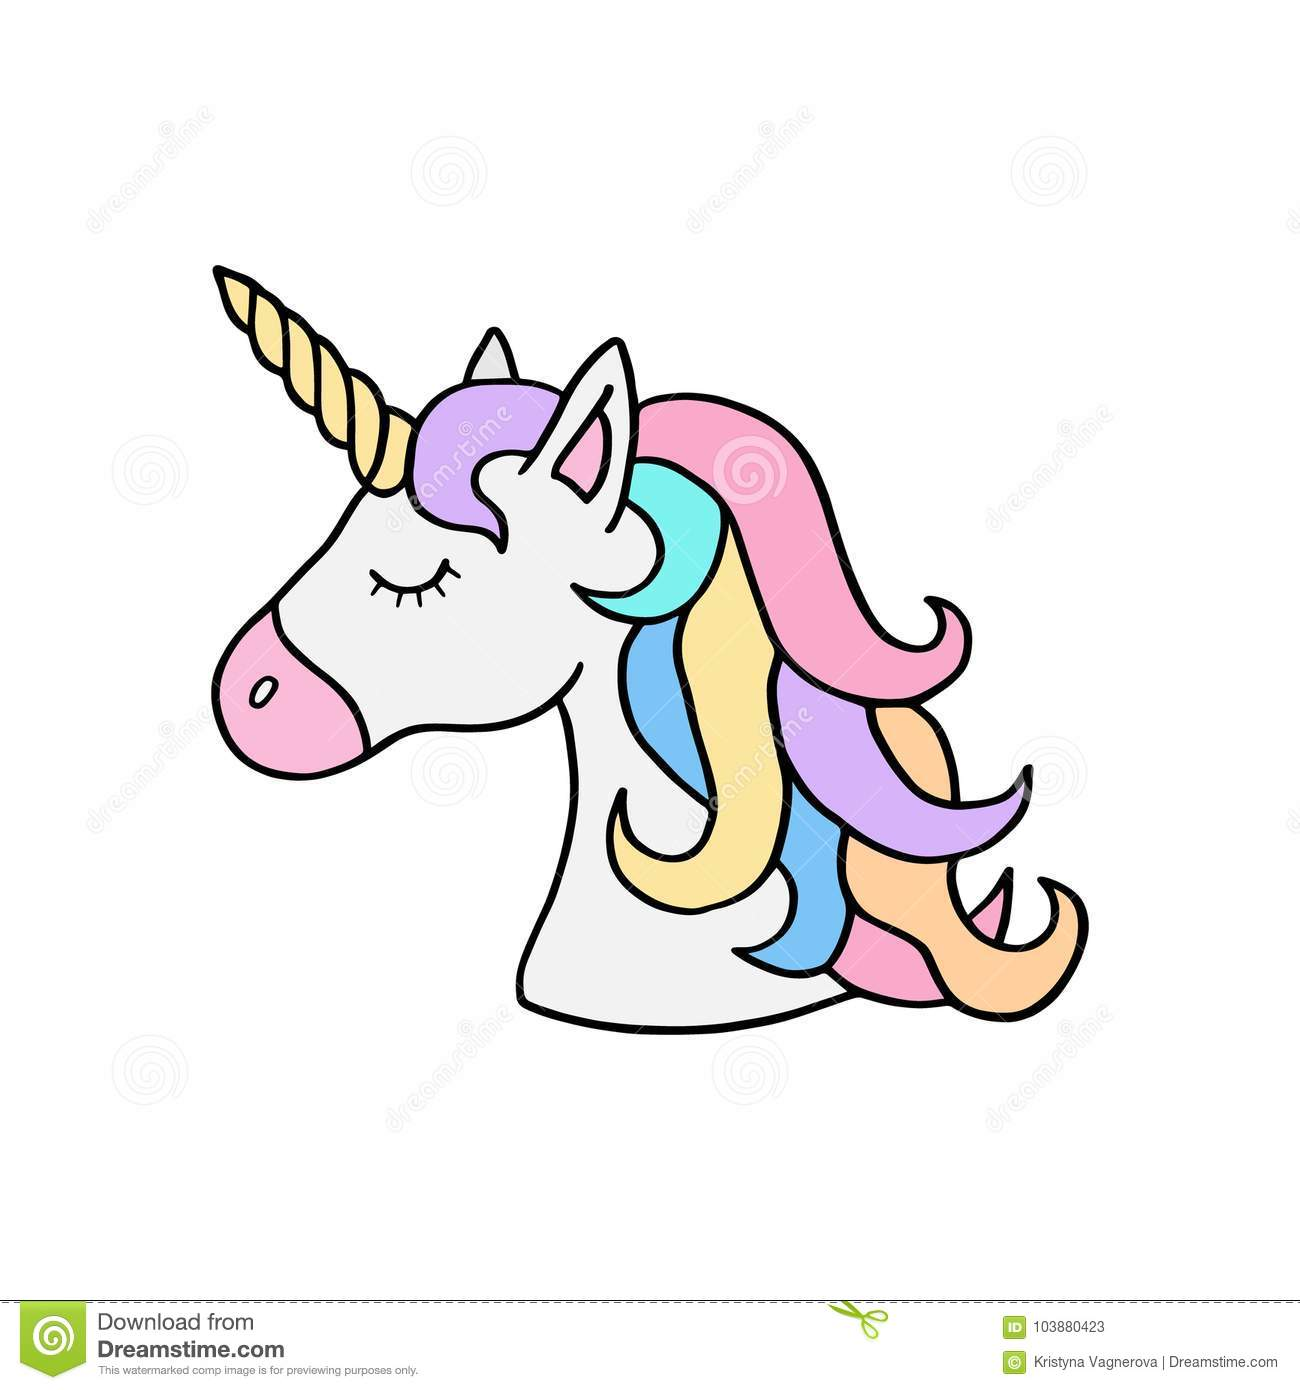 Colorful Rainbow Unicorns Head Illustration Stock Vector